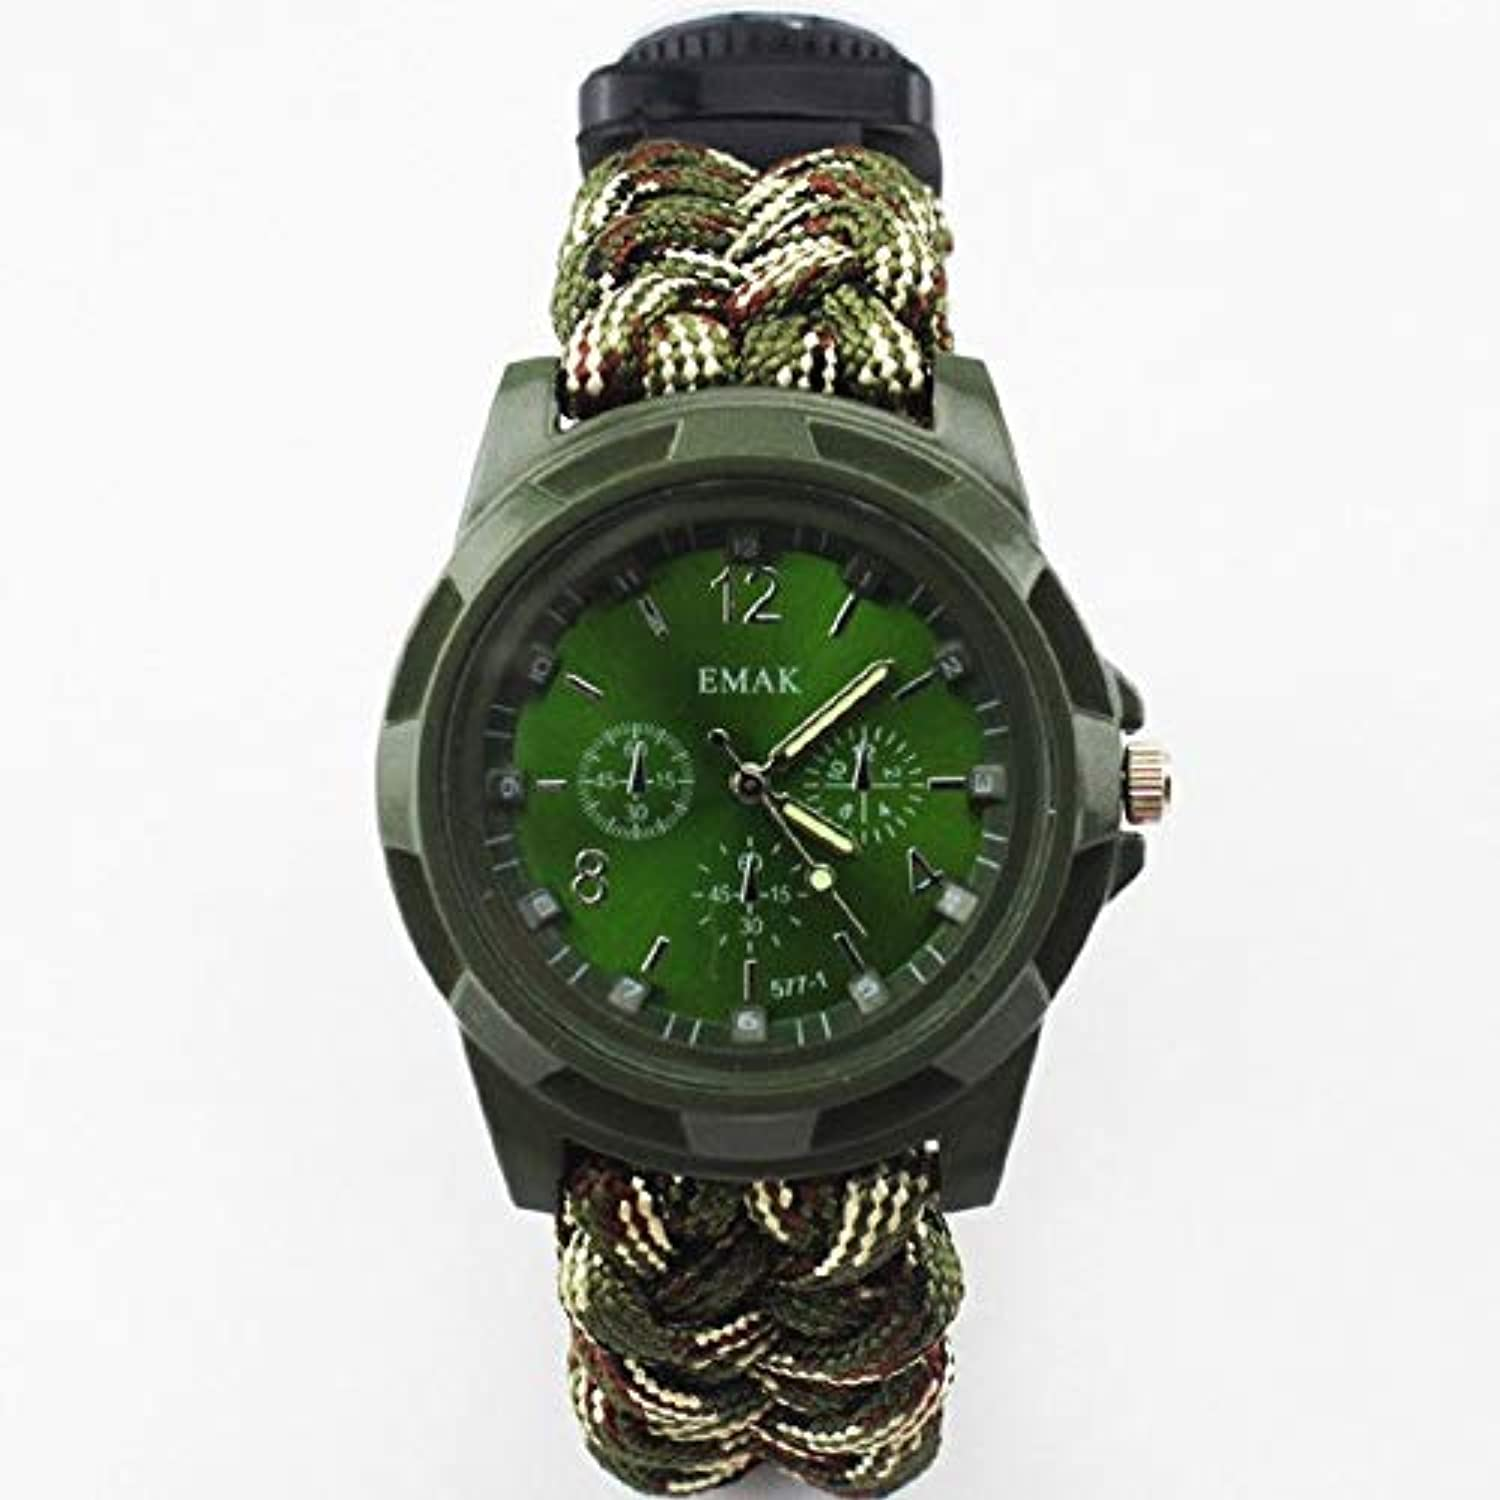 Outdoor MultiFunctional Survival Watch Camping Hiking Compass Thermometer Rescue Rope Paracord Bracelet Equipment Tools kit   Camouflage